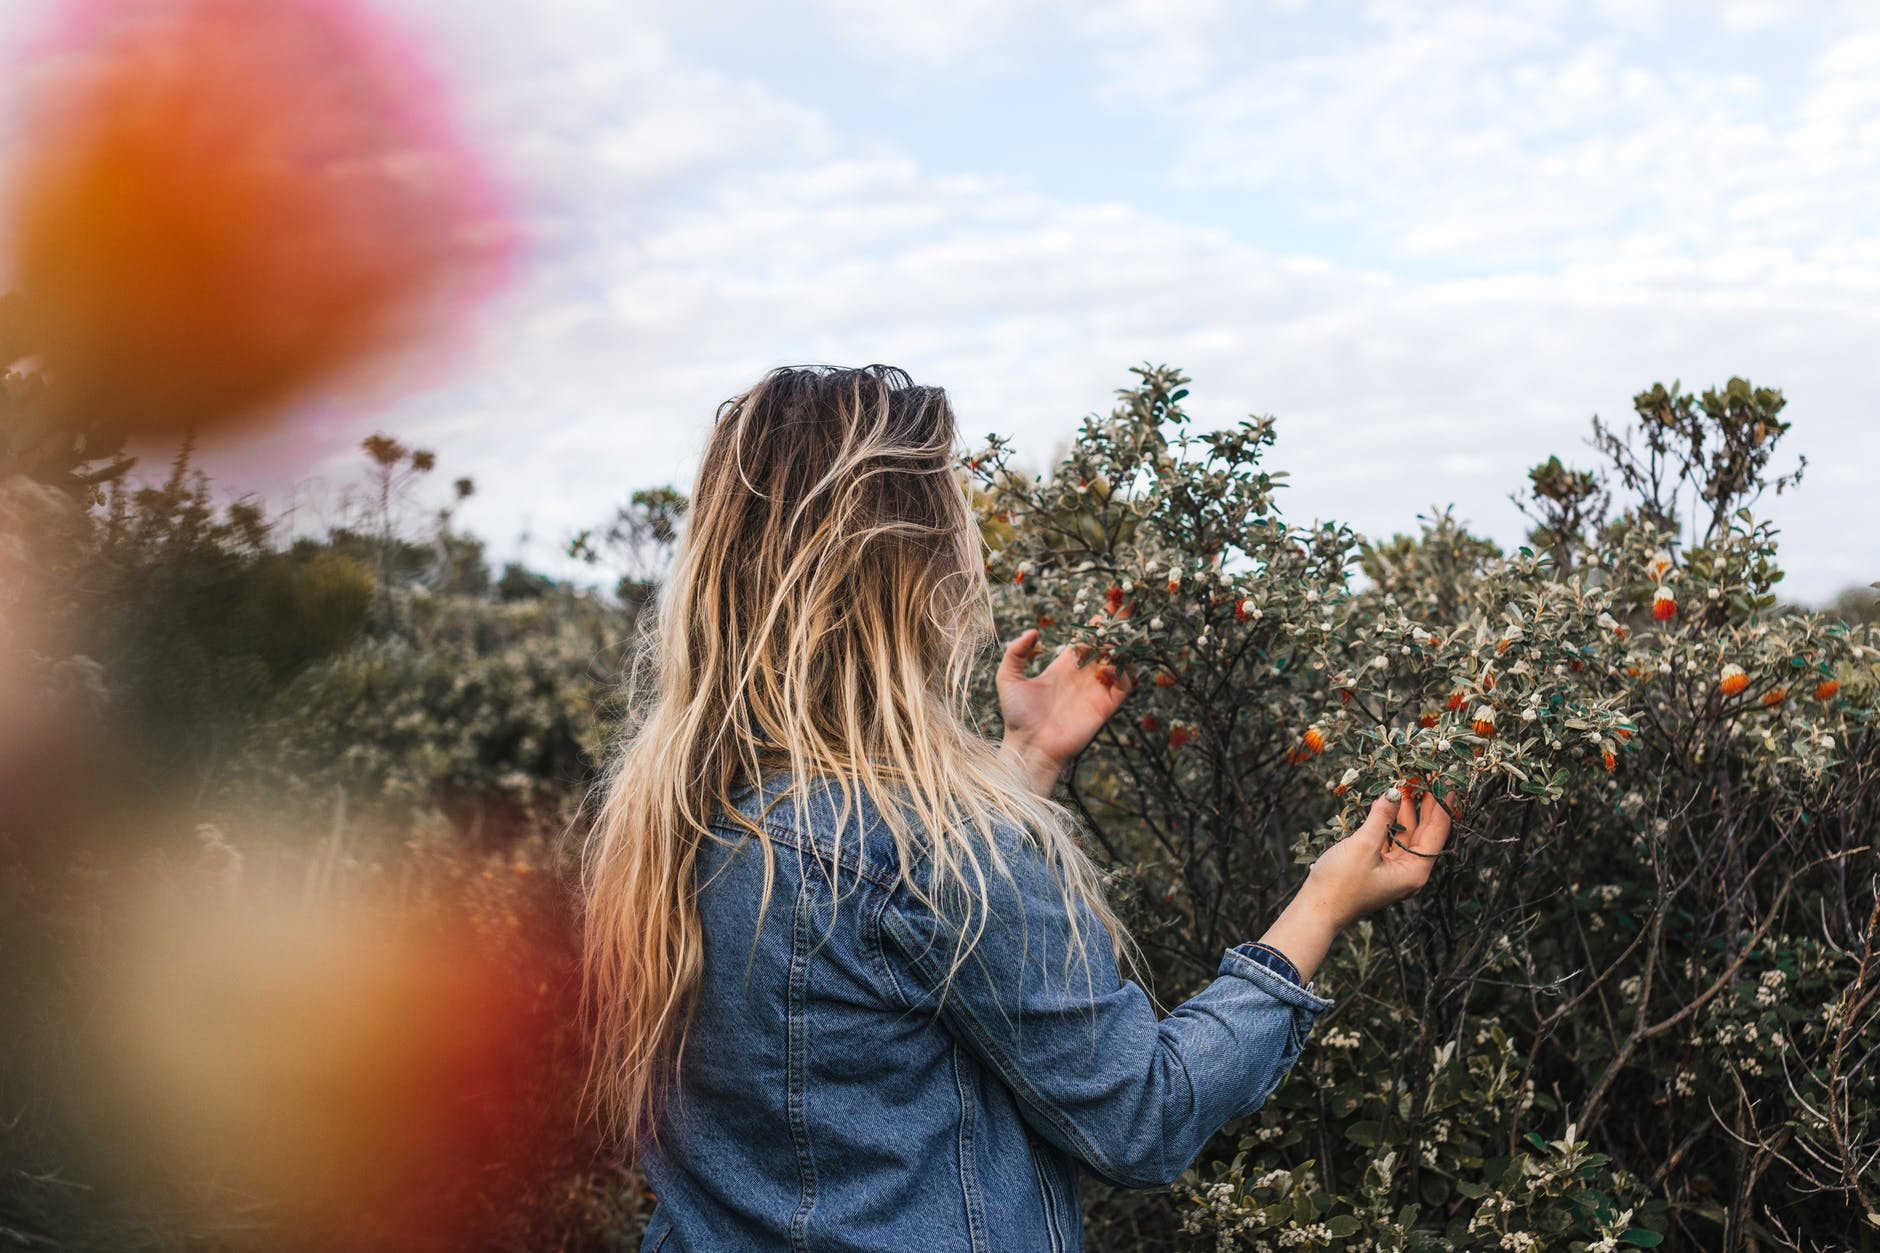 anonymous woman touching fruits on shrubs in countryside